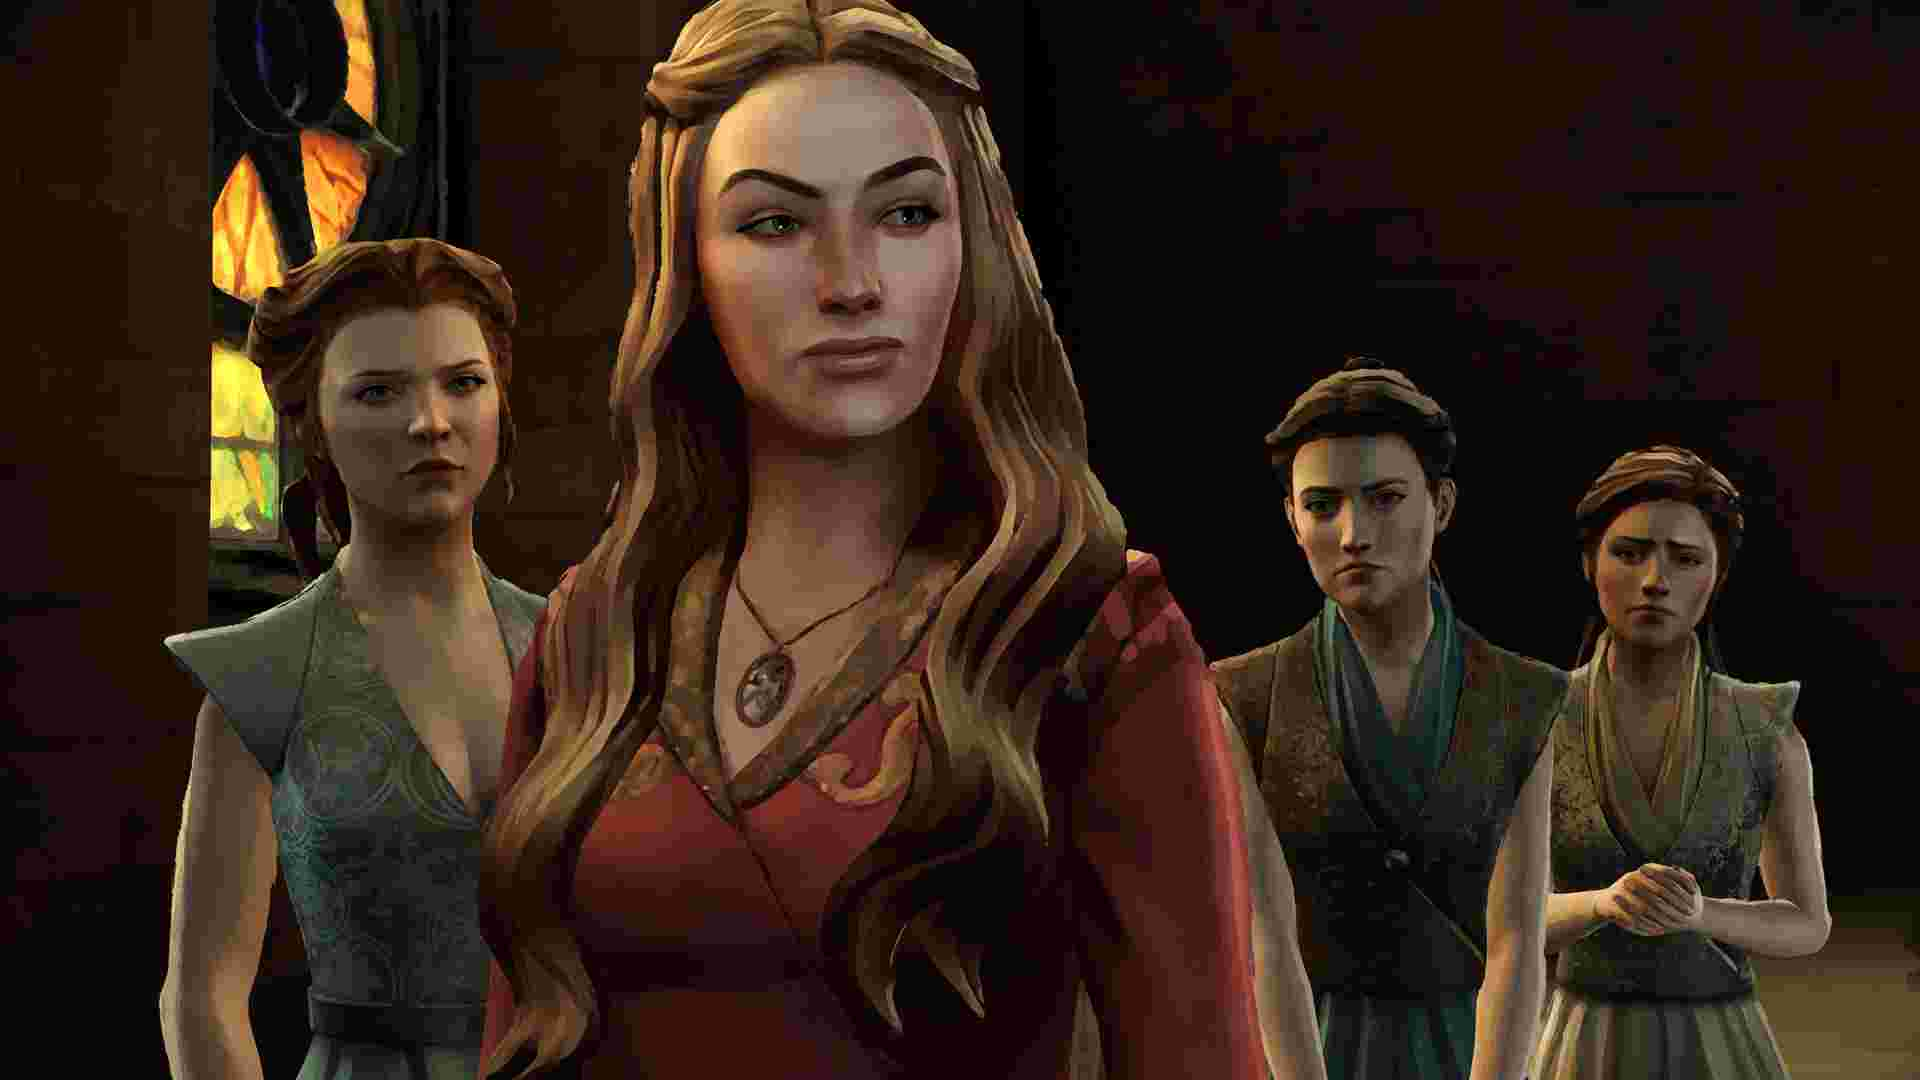 telltale-game-of-thrones-episode-3-throne-room_1920.0